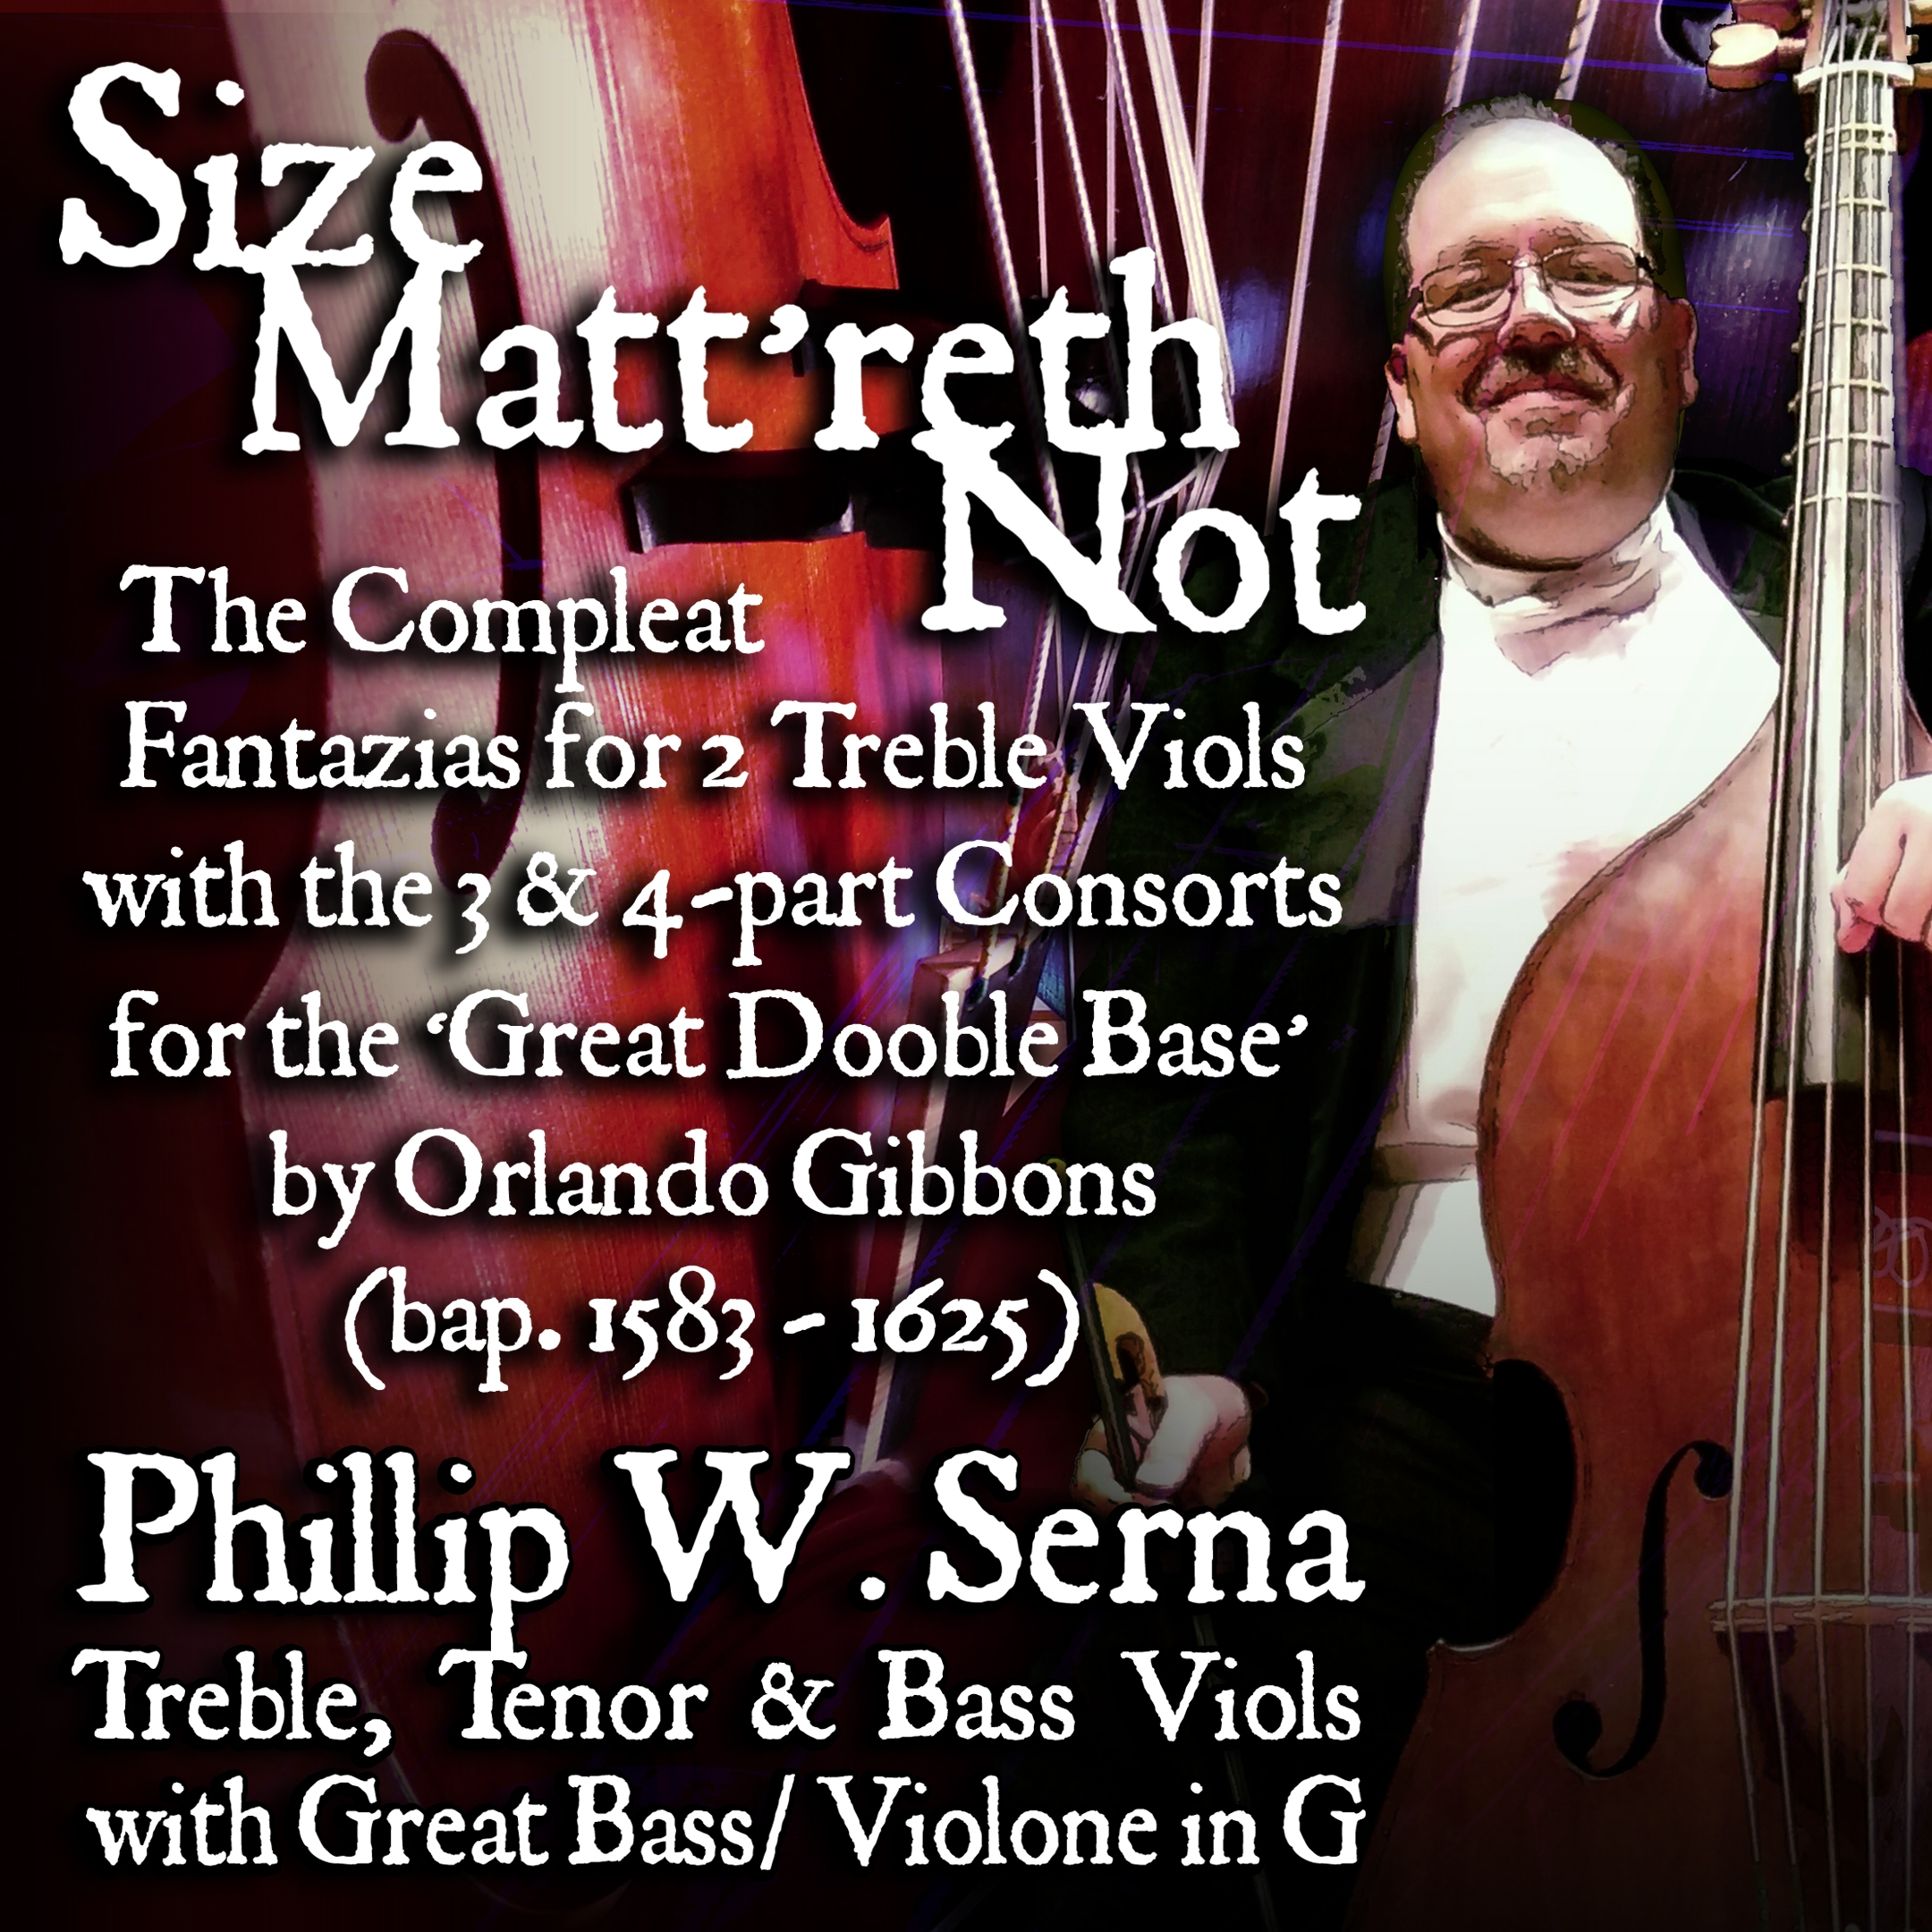 PREORDER Size Matt'reth Not – The Compleat Fantazias for 2 Treble Viols & the 3 & 4-part Consorts for the 'Great Dooble Base' by Orlando Gibbons (bap.1583-1625)